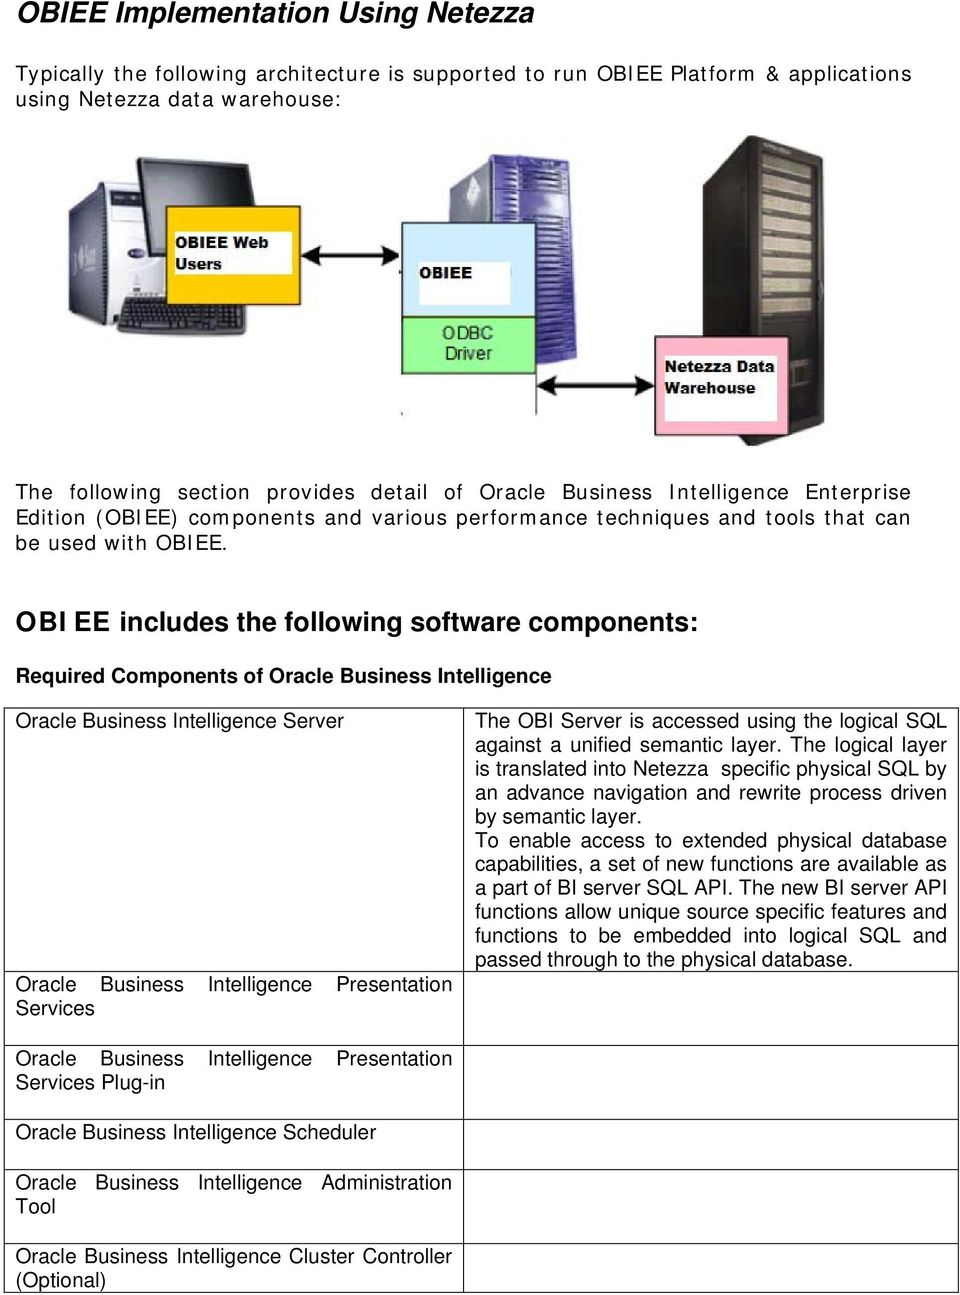 OBIEE includes the following software components: Required Components of Oracle Business Intelligence Oracle Business Intelligence Server Oracle Business Intelligence Presentation Services The OBI